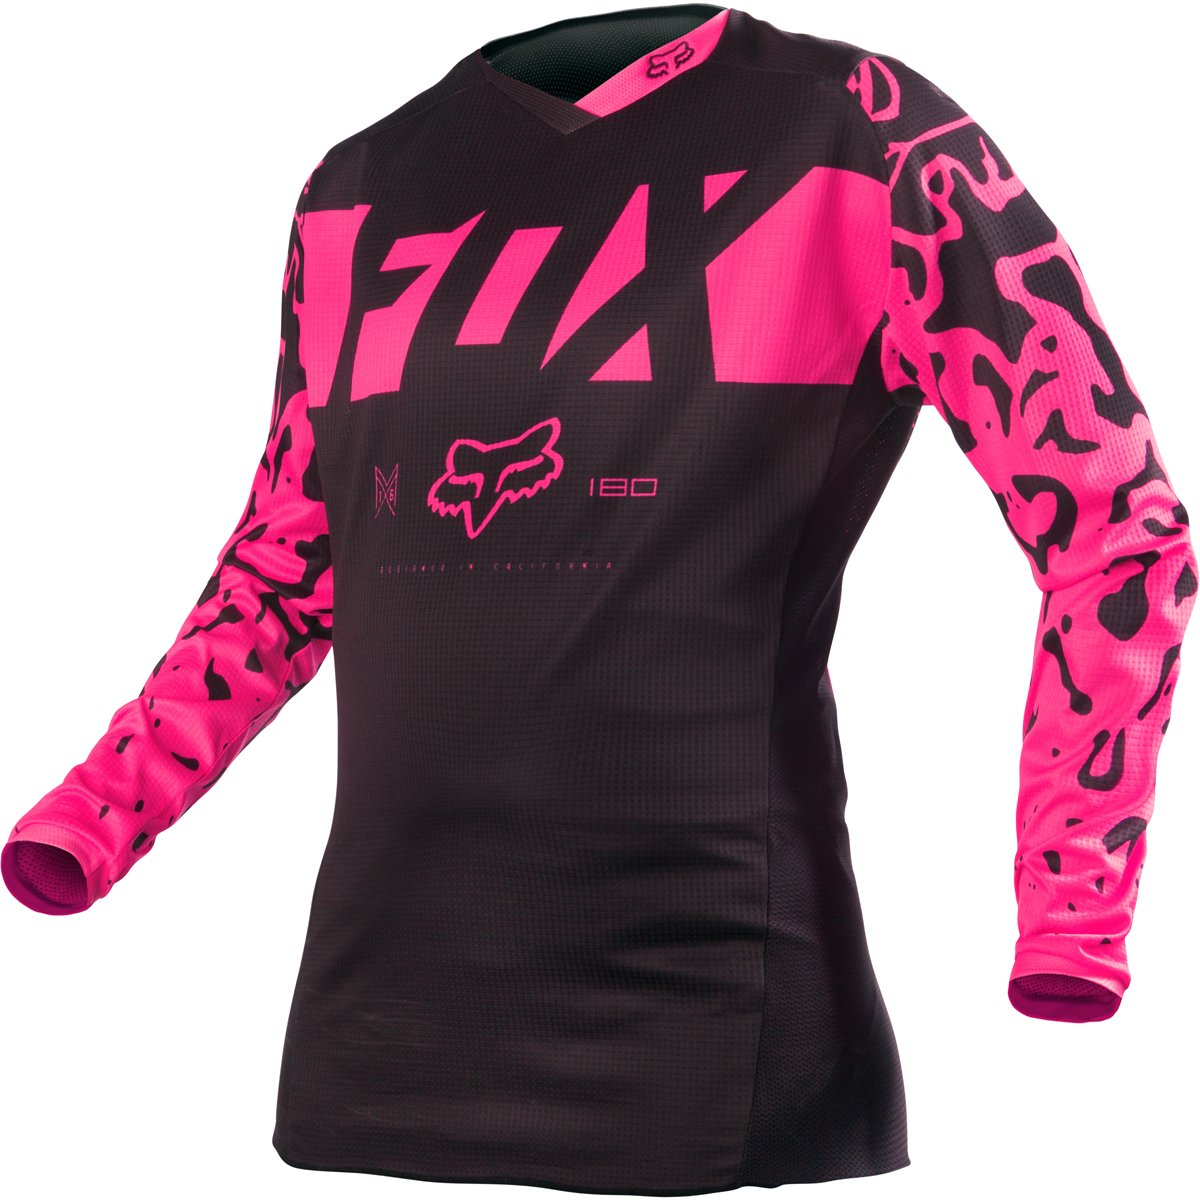 2016 Fox Racing Womens 180 Jersey-Black/Pink-XS